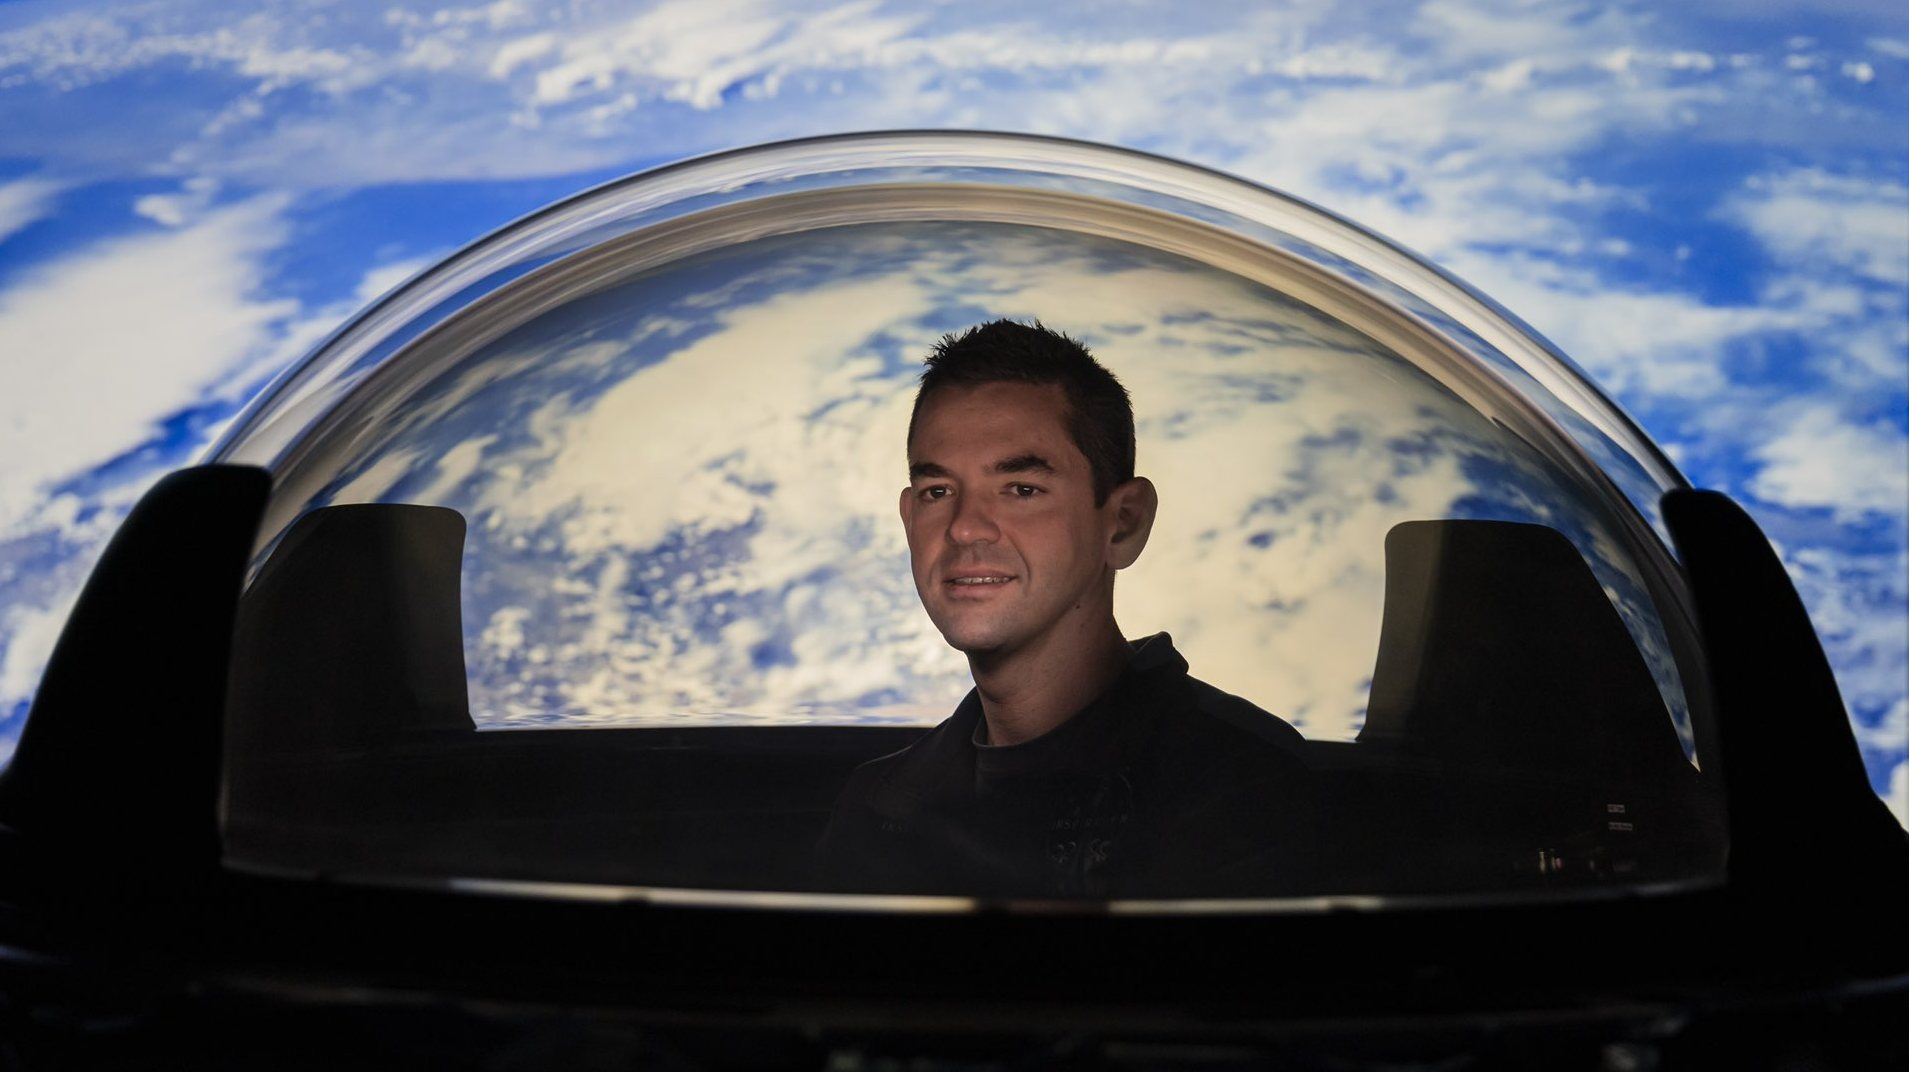 Elon Musk says Inspiration4 crew had 'challenges' with the toilet - CNET